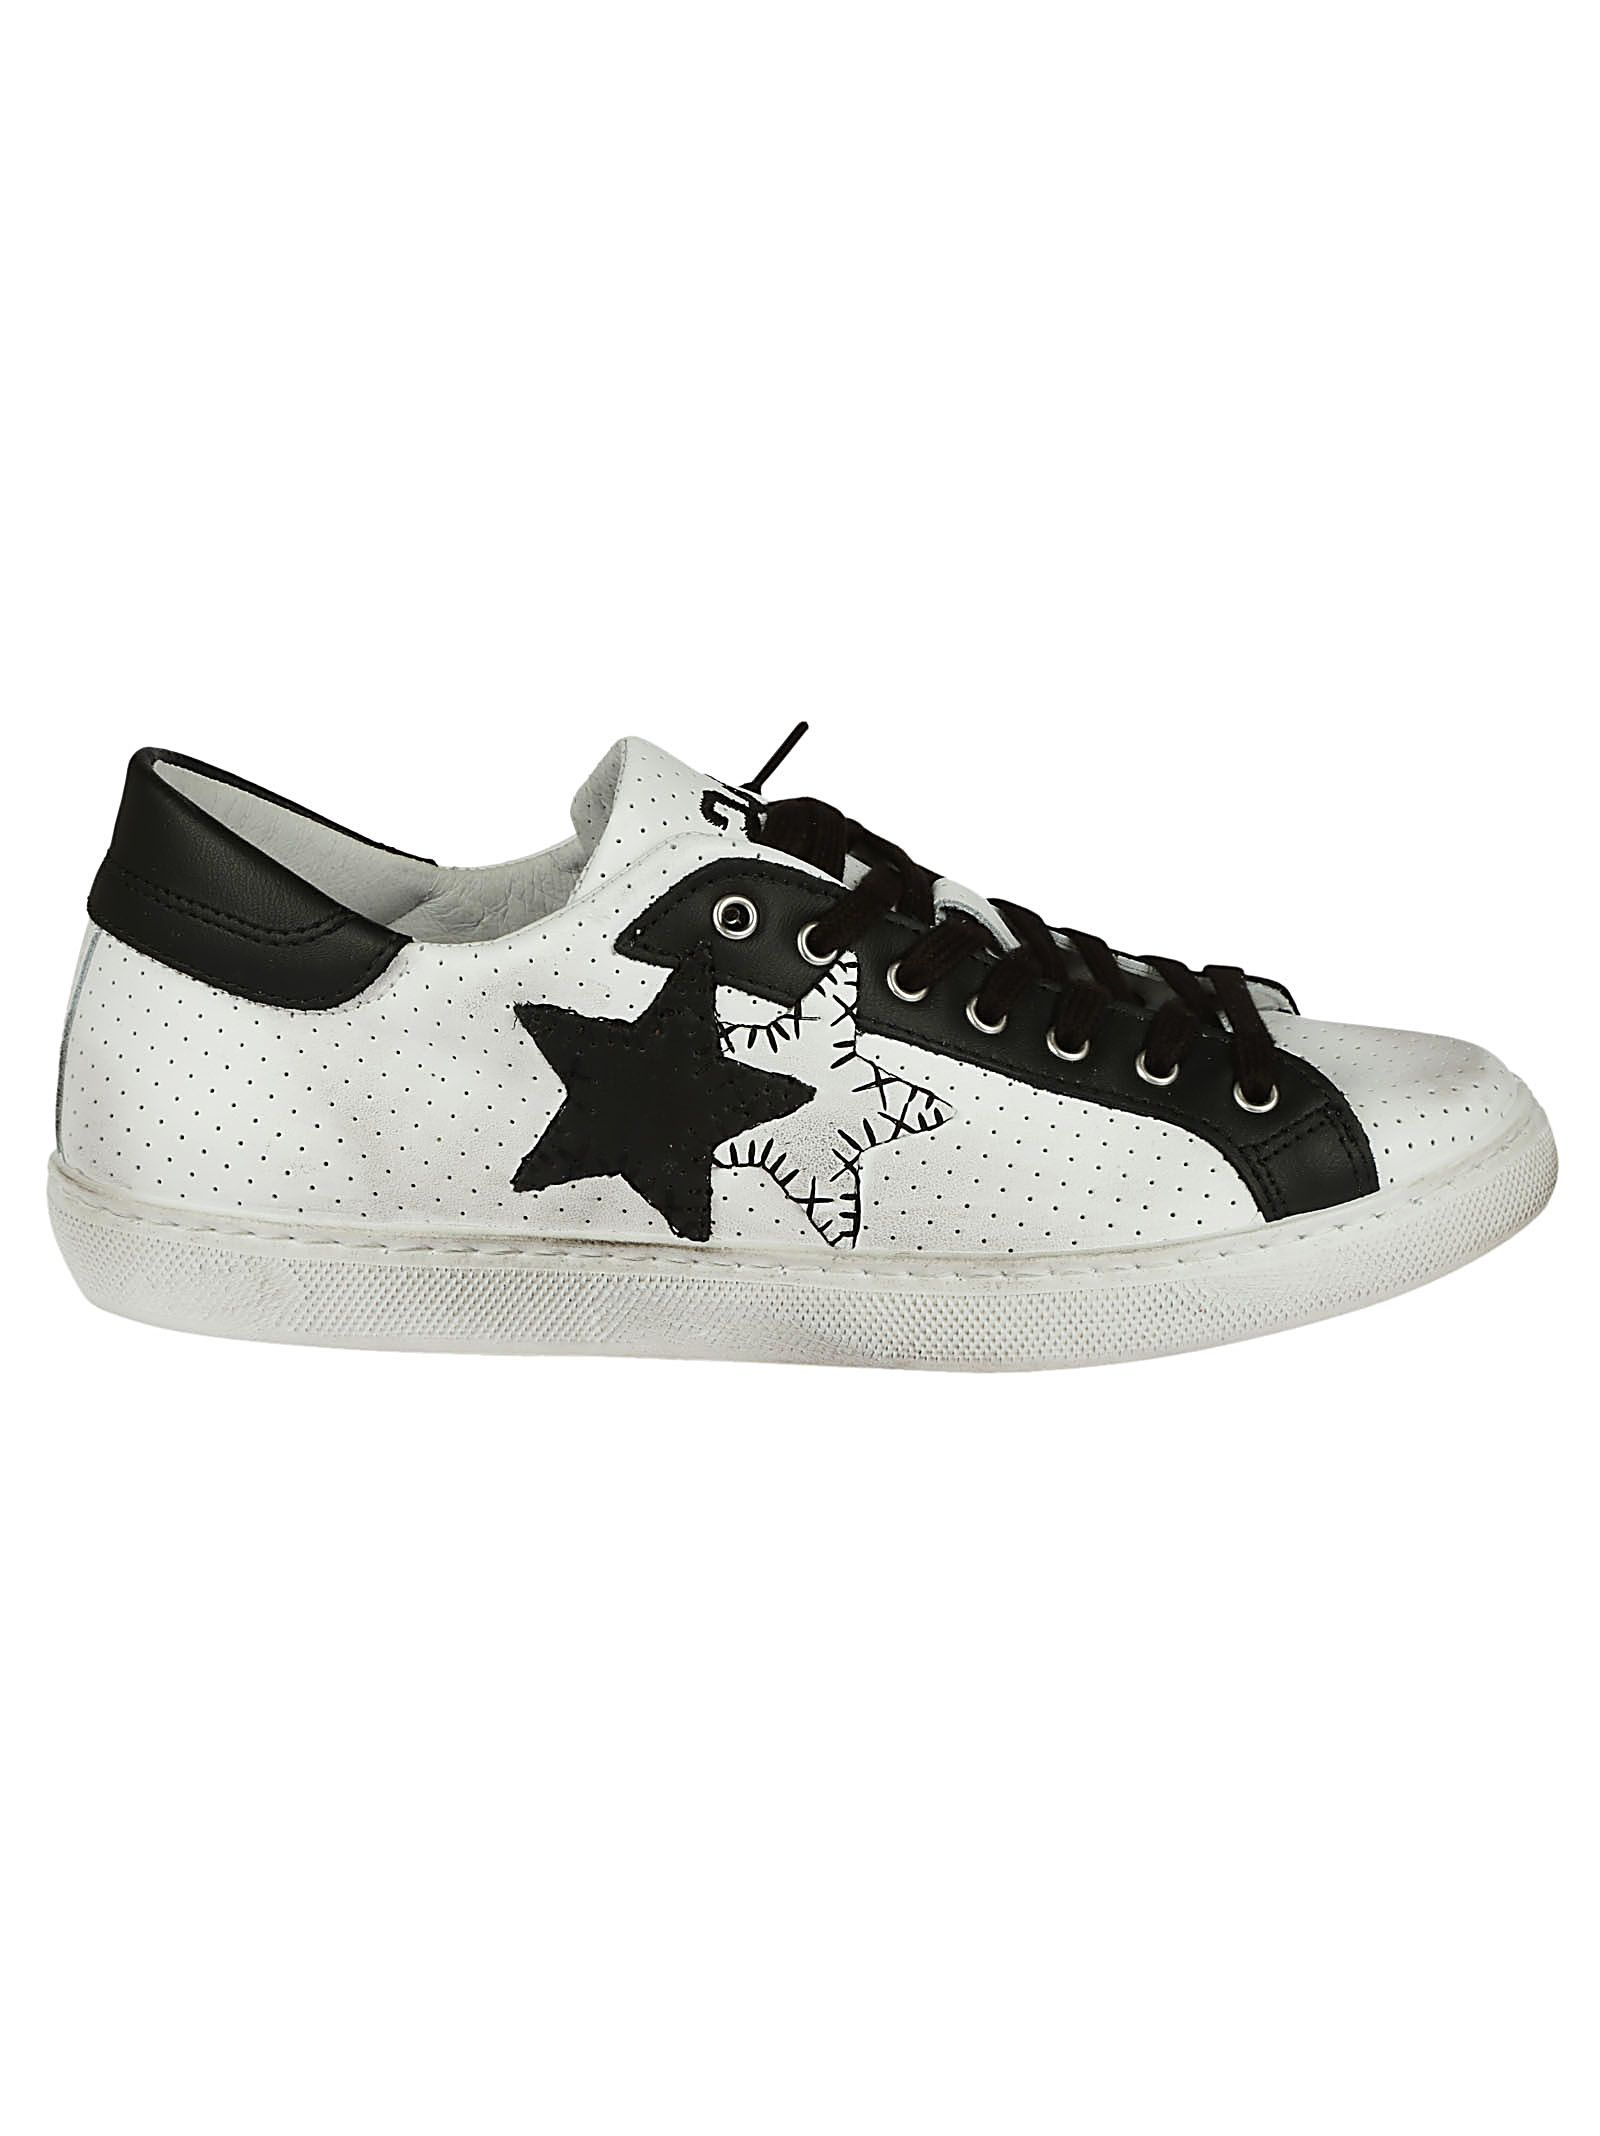 2star male 2 star low sneakers